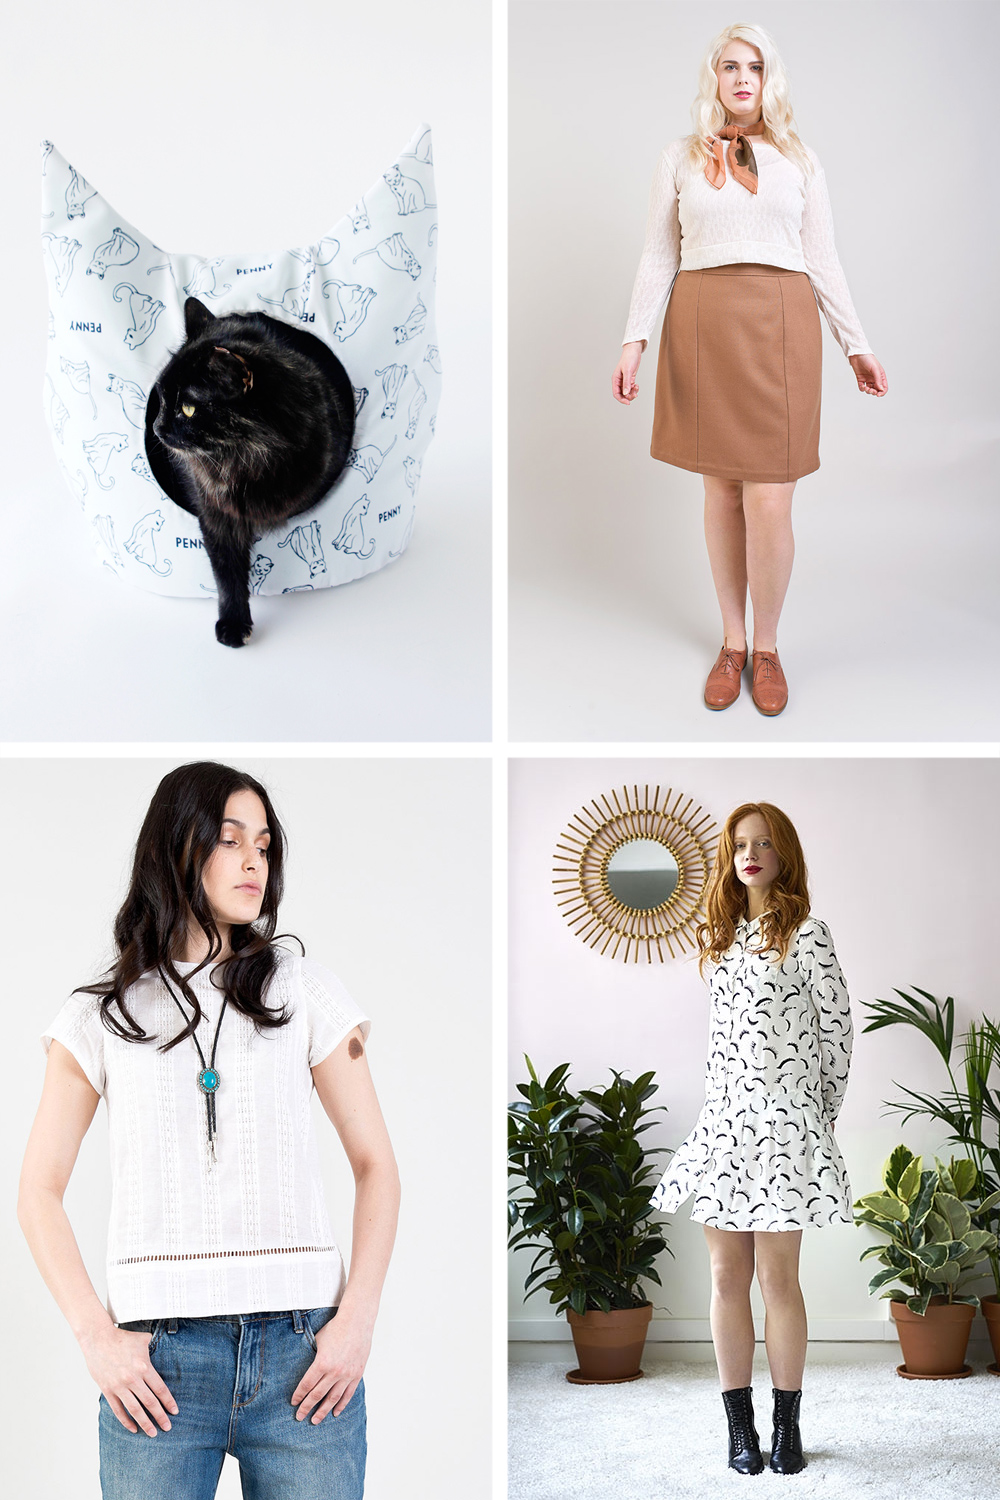 Clockwise from top left: DIY Cat Bed //   Selene Skirt   //   Lena Dress   //   Hayden Top